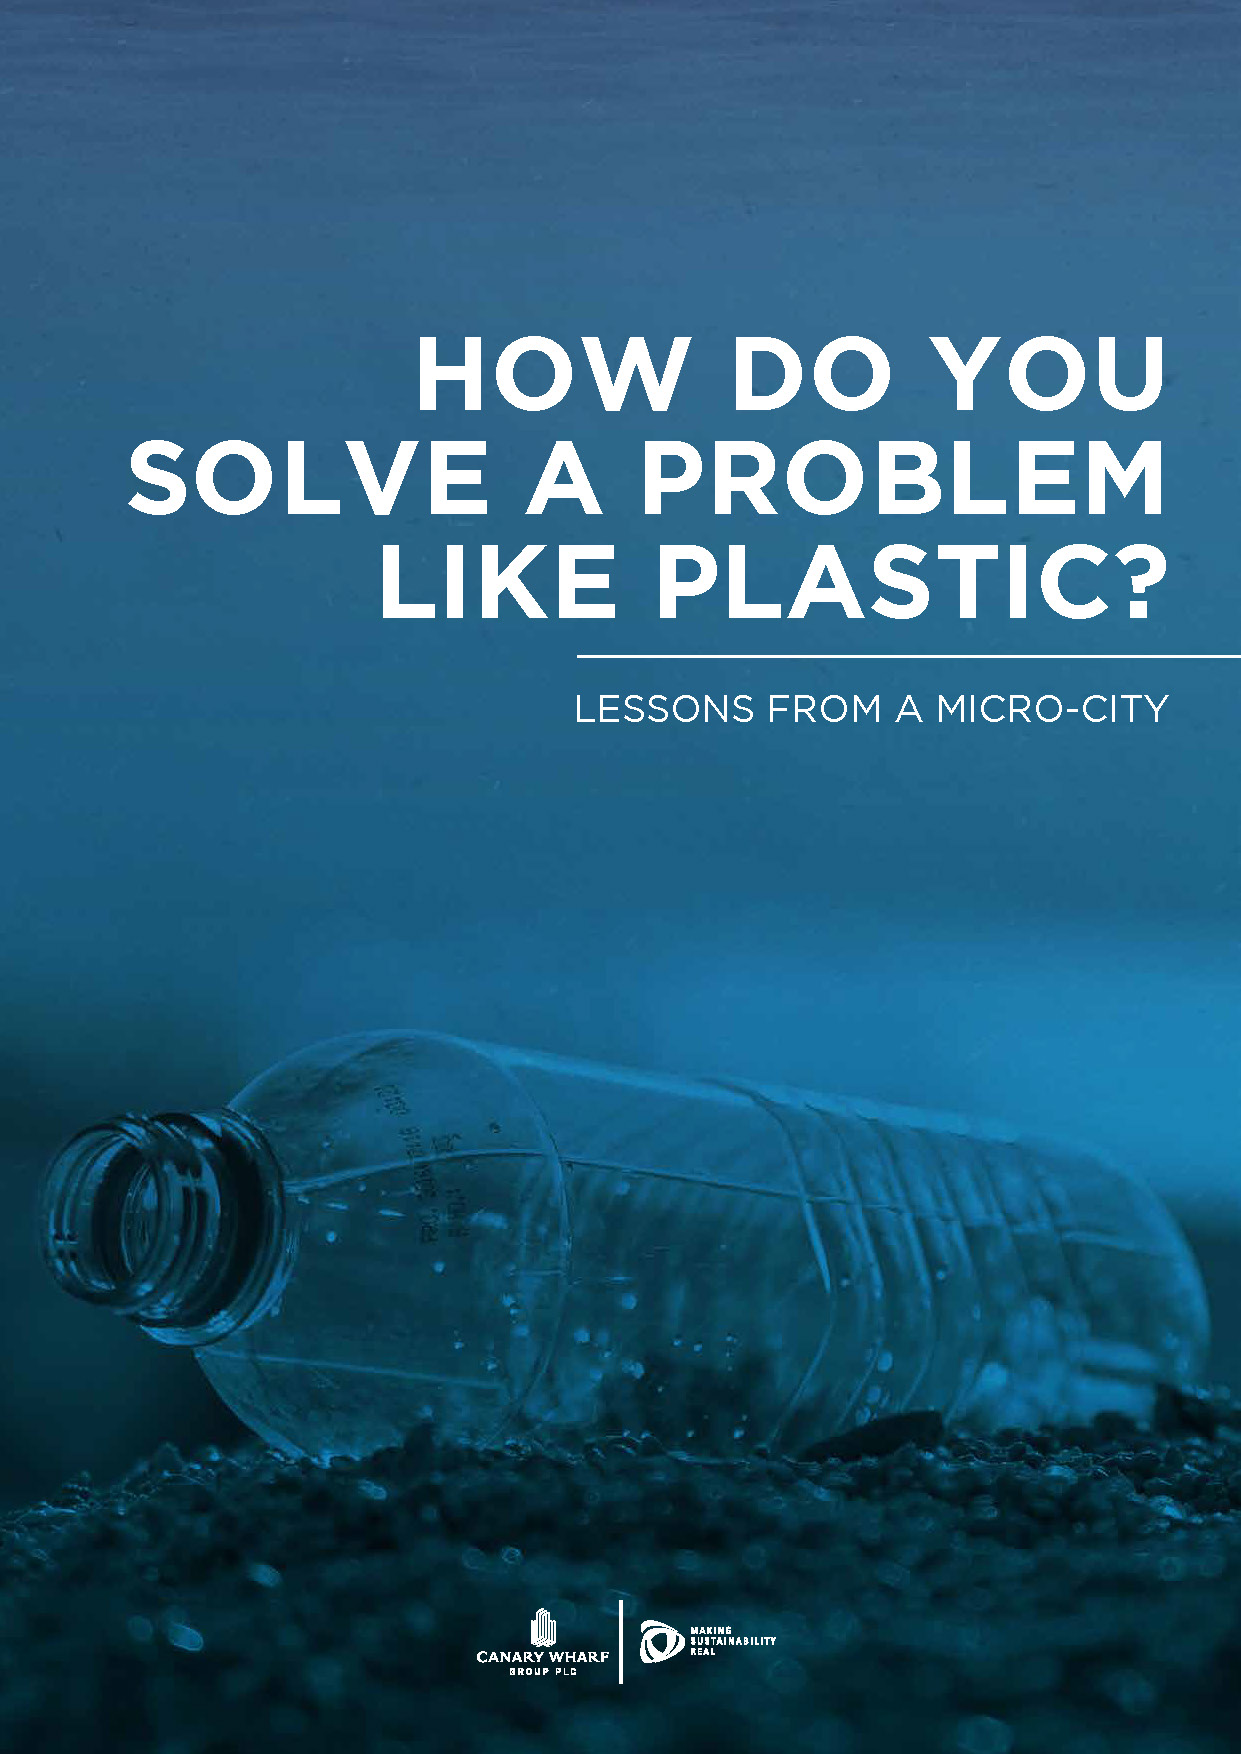 How+do+you+solve+a+problem+like+plastic_+Lessons+from+a+micro-city_Page_01.jpg